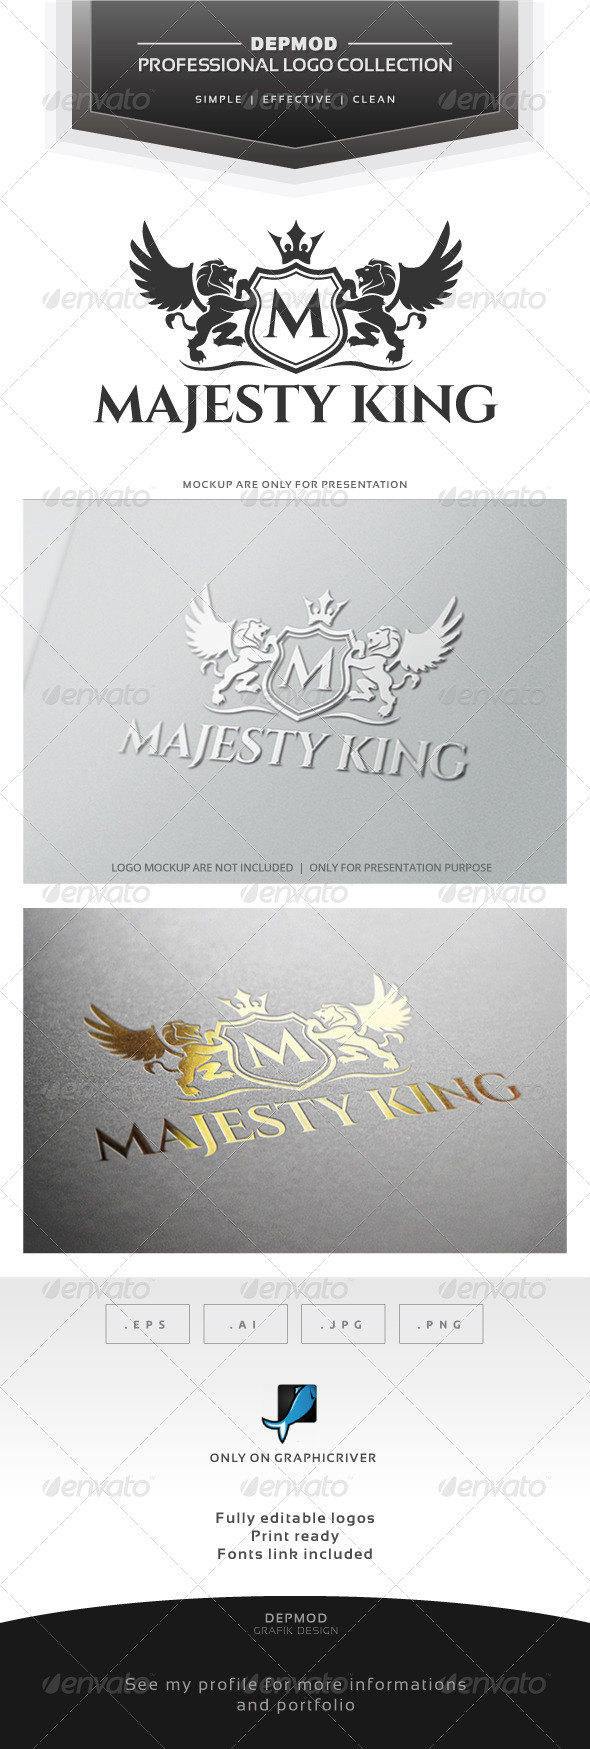 Majesty King V.02 Logo - Crests Logo Templates